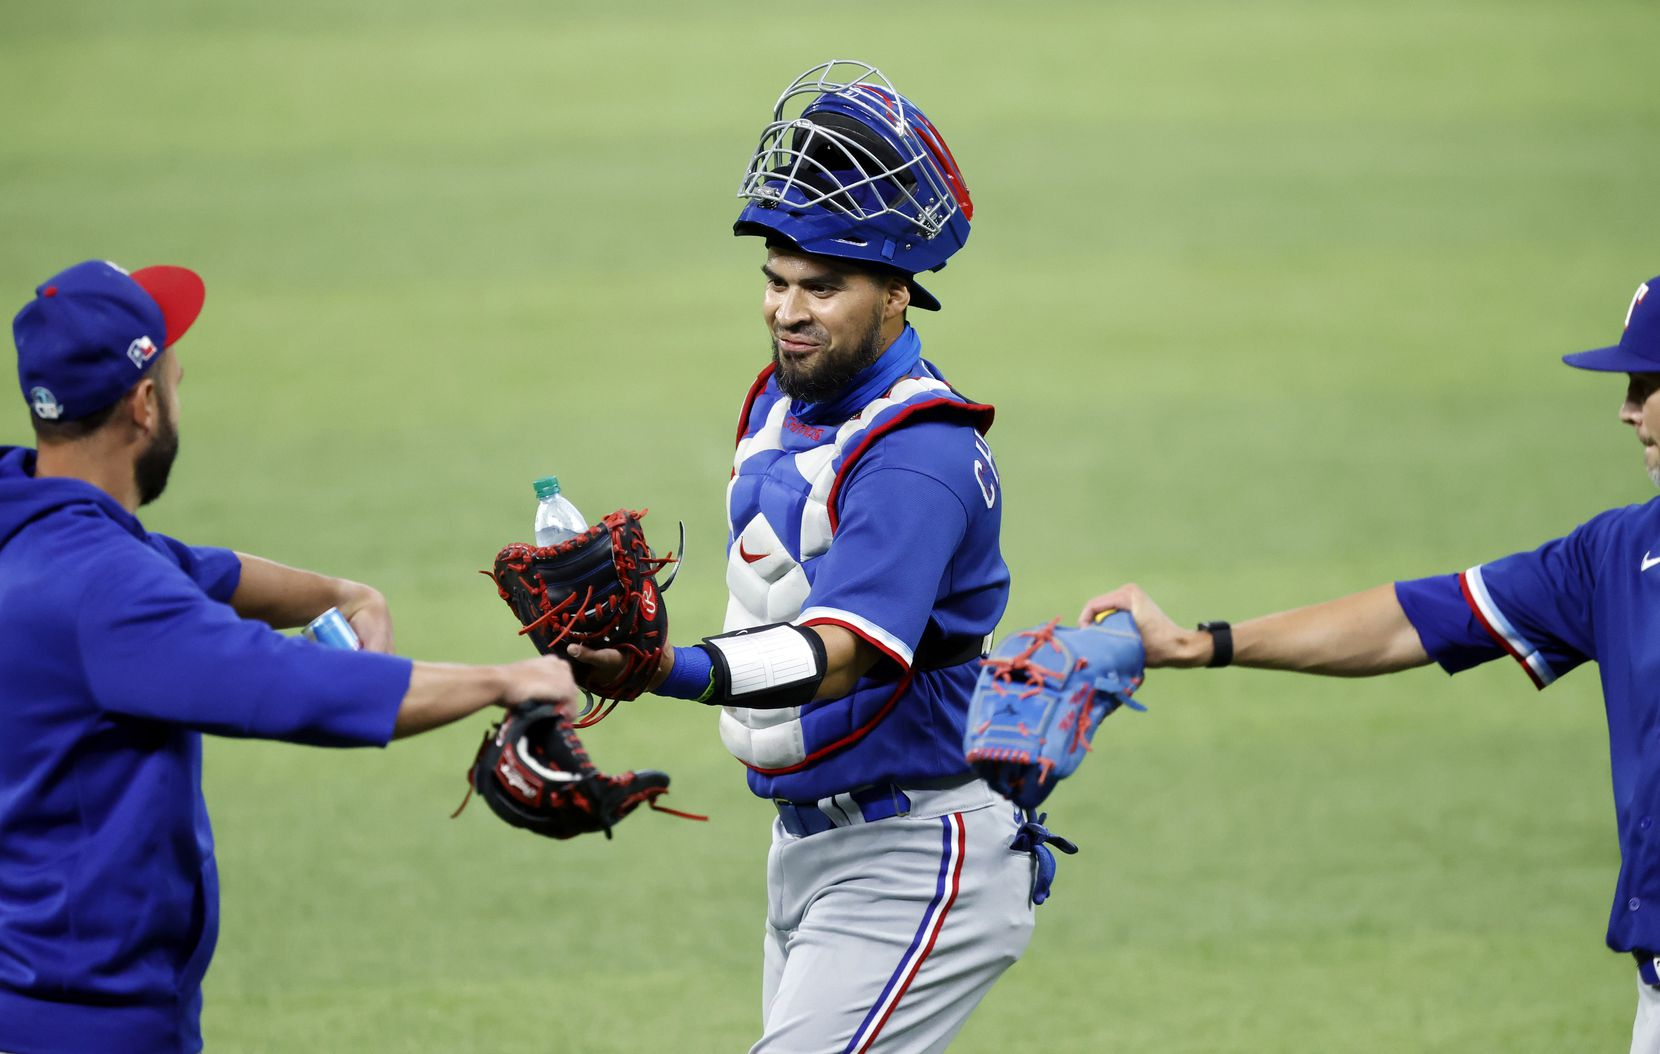 Texas Rangers catcher Robinson Chirinos (center) receives a fist bump from a teammate before a simulated Summer Camp game inside Globe Life Field in Arlington, Texas, Thursday, July 9, 2020. (Tom Fox/The Dallas Morning News)